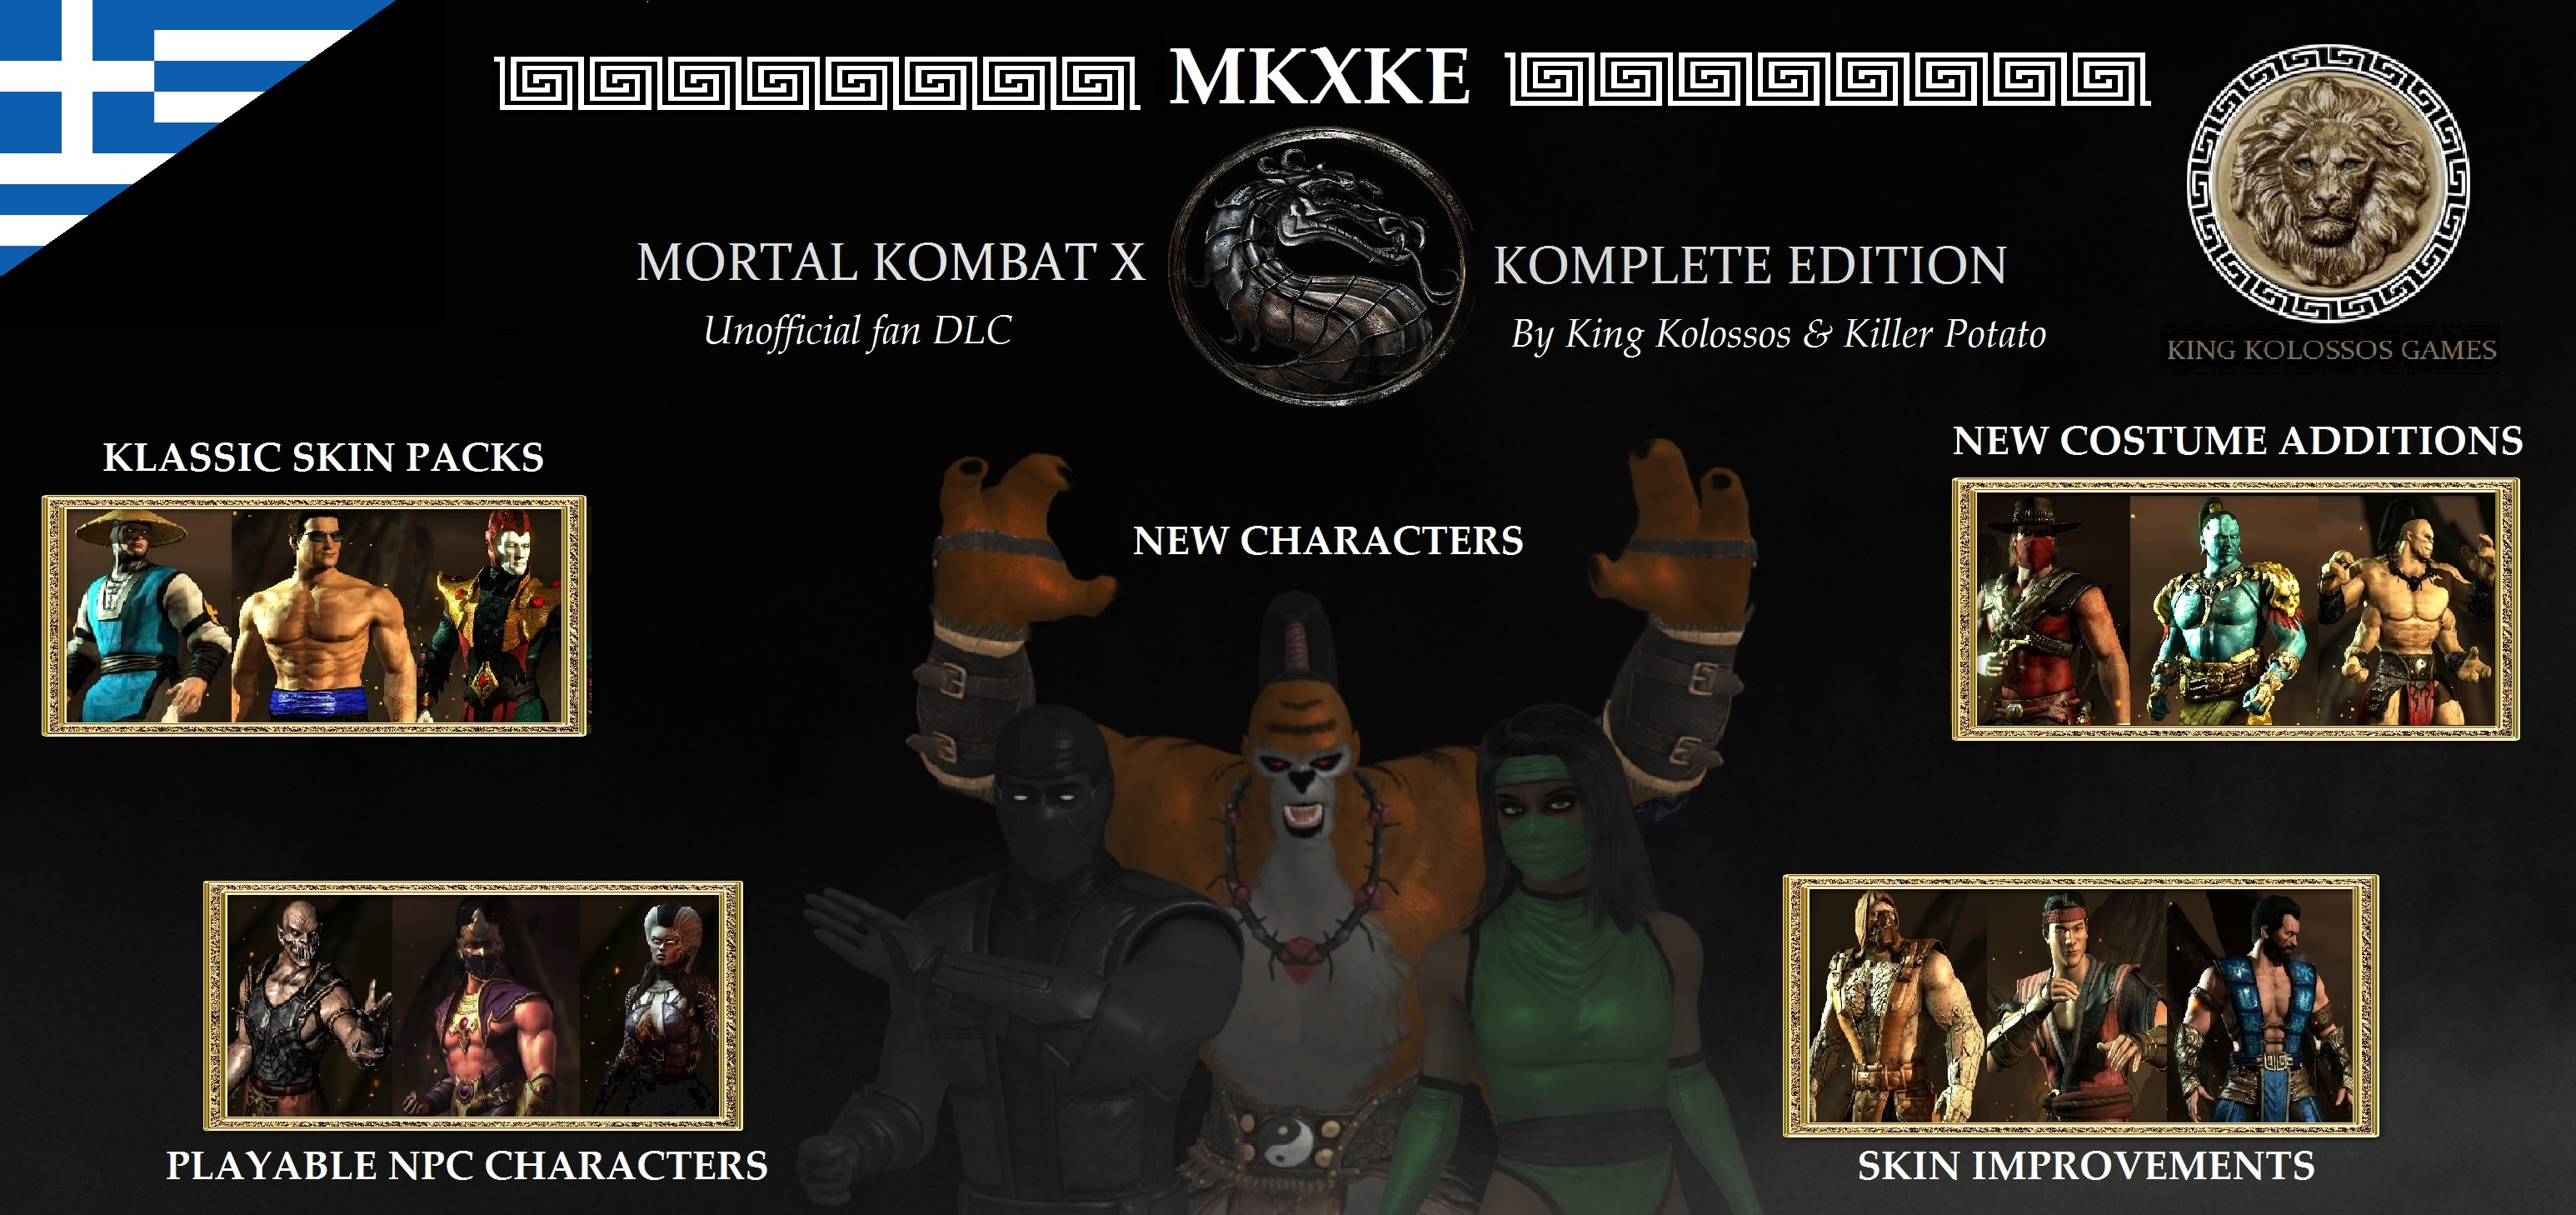 Mortal kombat komplete edition sex erotic photos